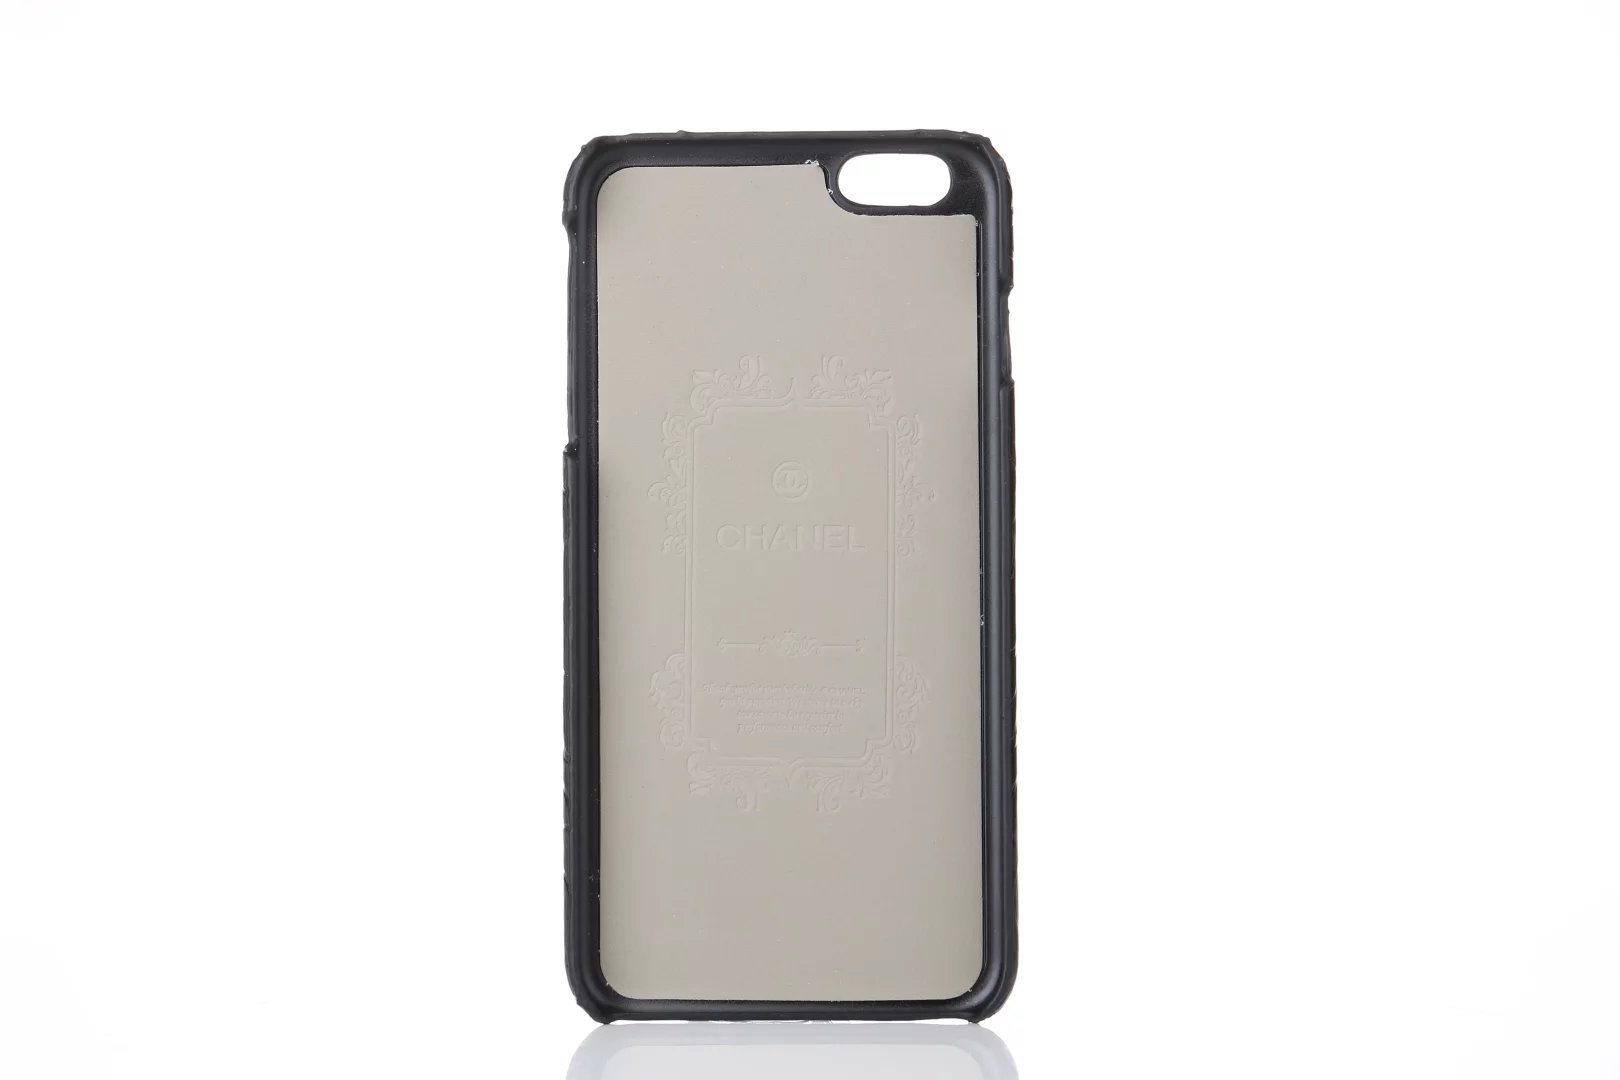 new iphone 6 covers iphone 6 personalised case fashion iphone6 case iphone 6 case for 6 iphone 6 wristlet case newest iphone 6 release date buy iphone 6 case skin iphone case iphone 6 case custom